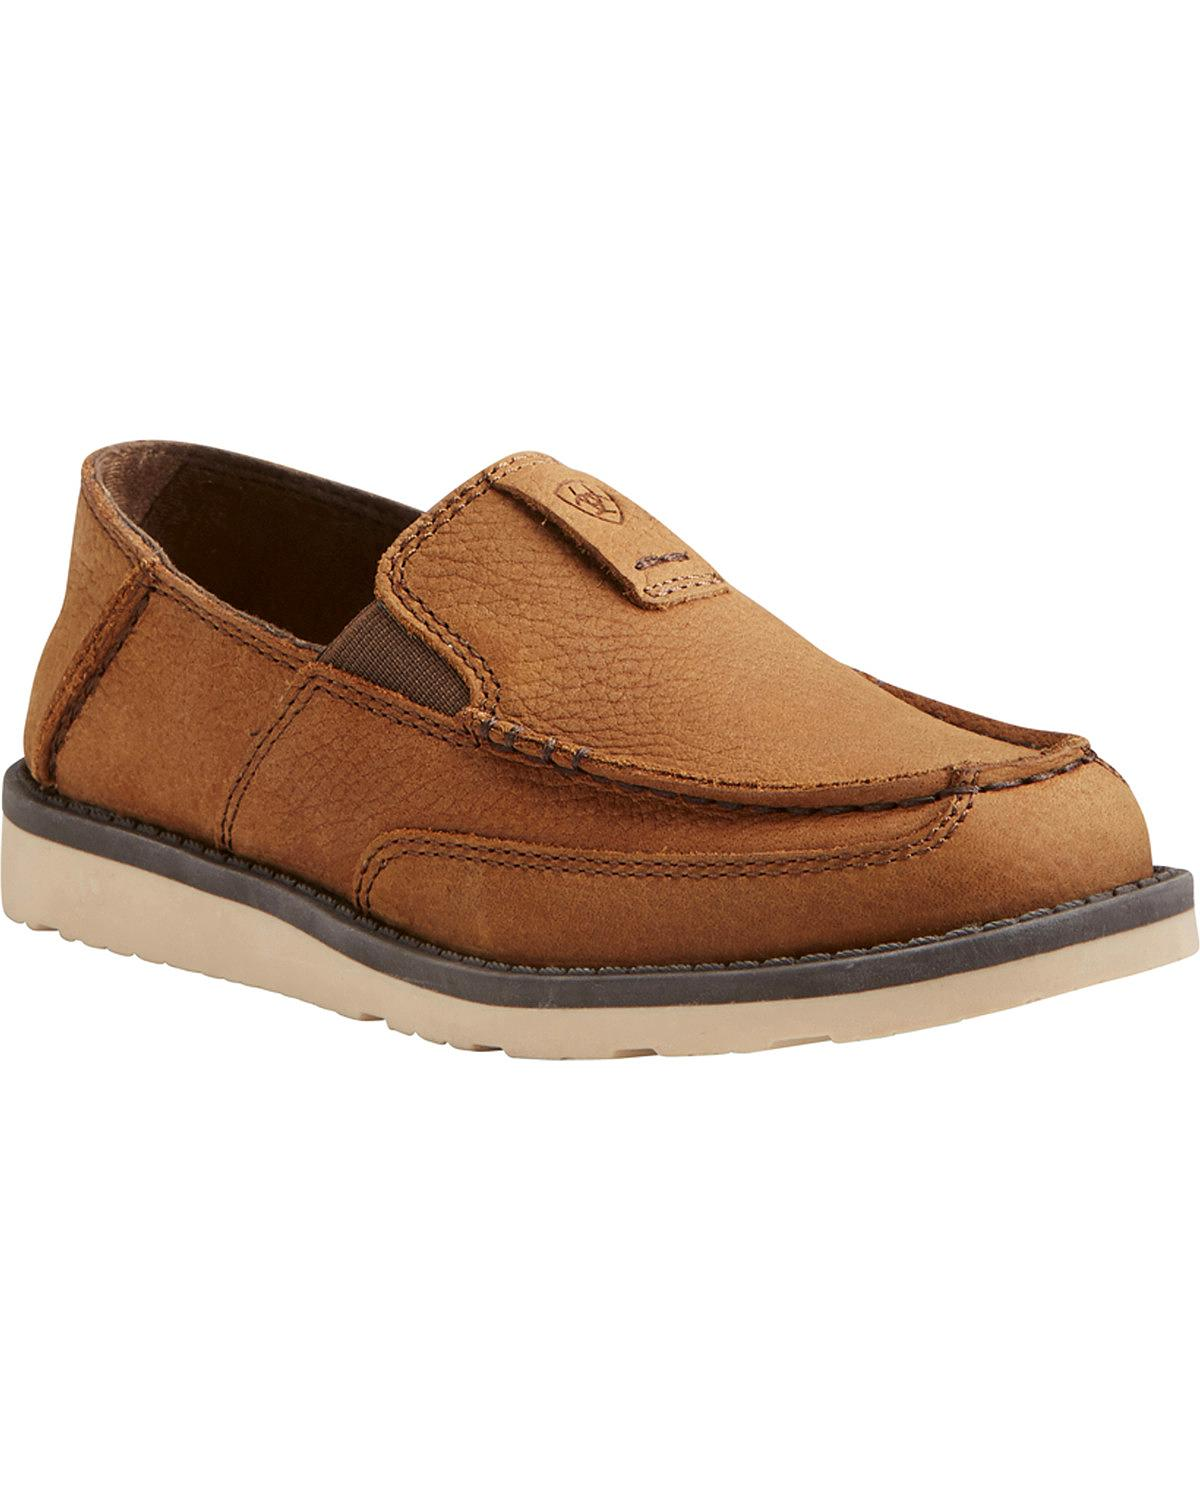 Ariat Boys' Slip On Cruiser Shoes Moc Toe 10021606 by Ariat